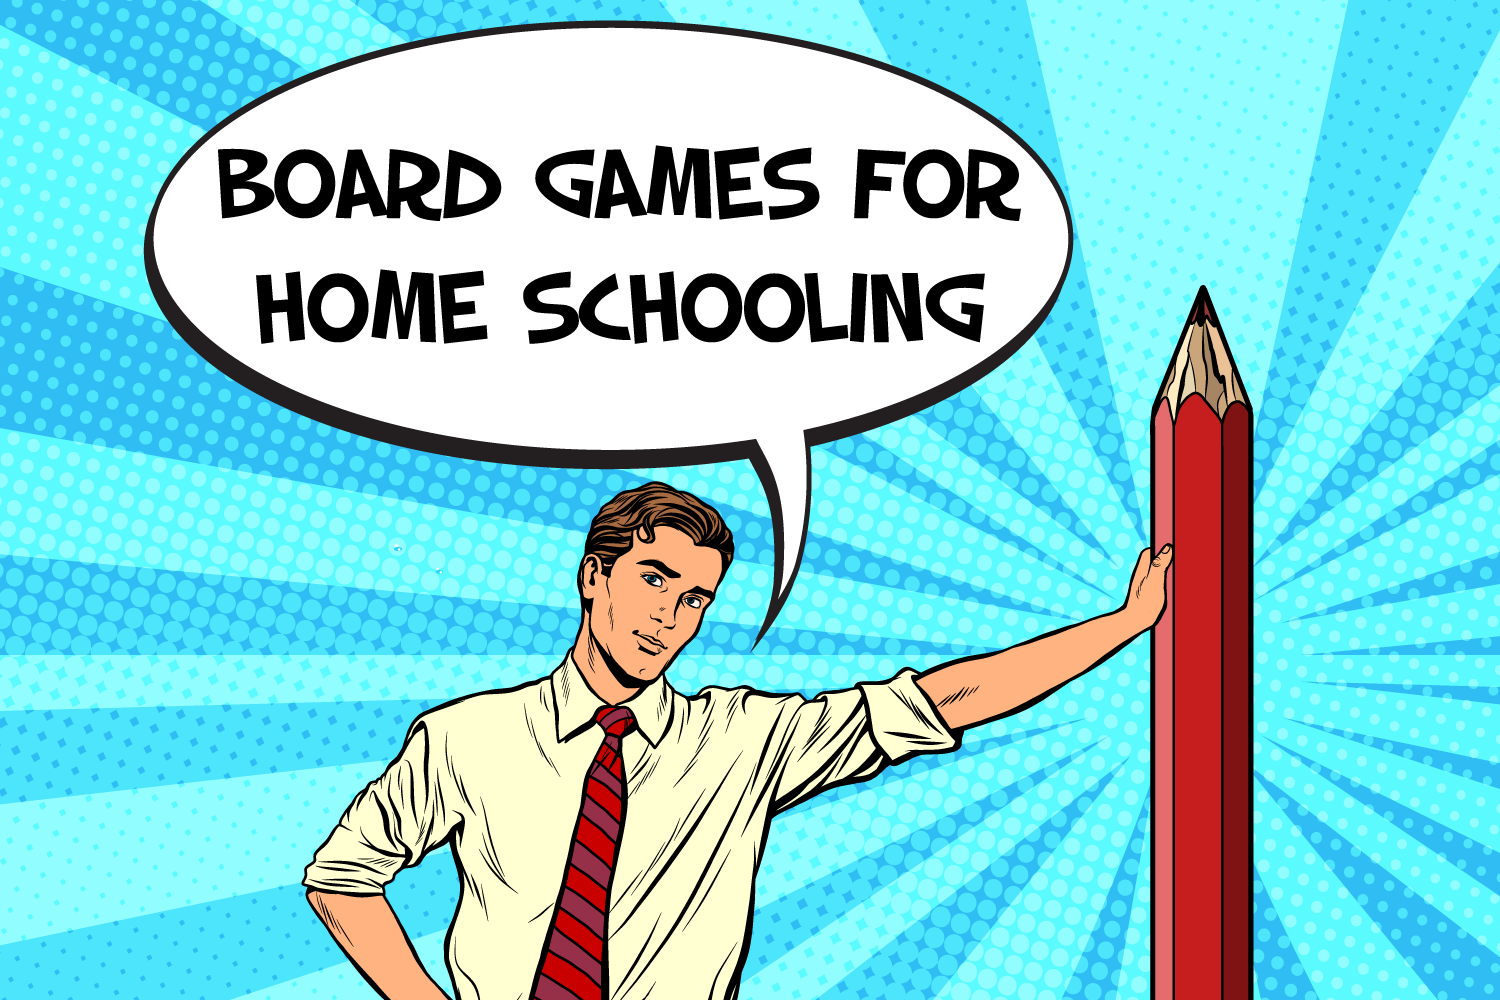 board-games-for-home-schooling-header